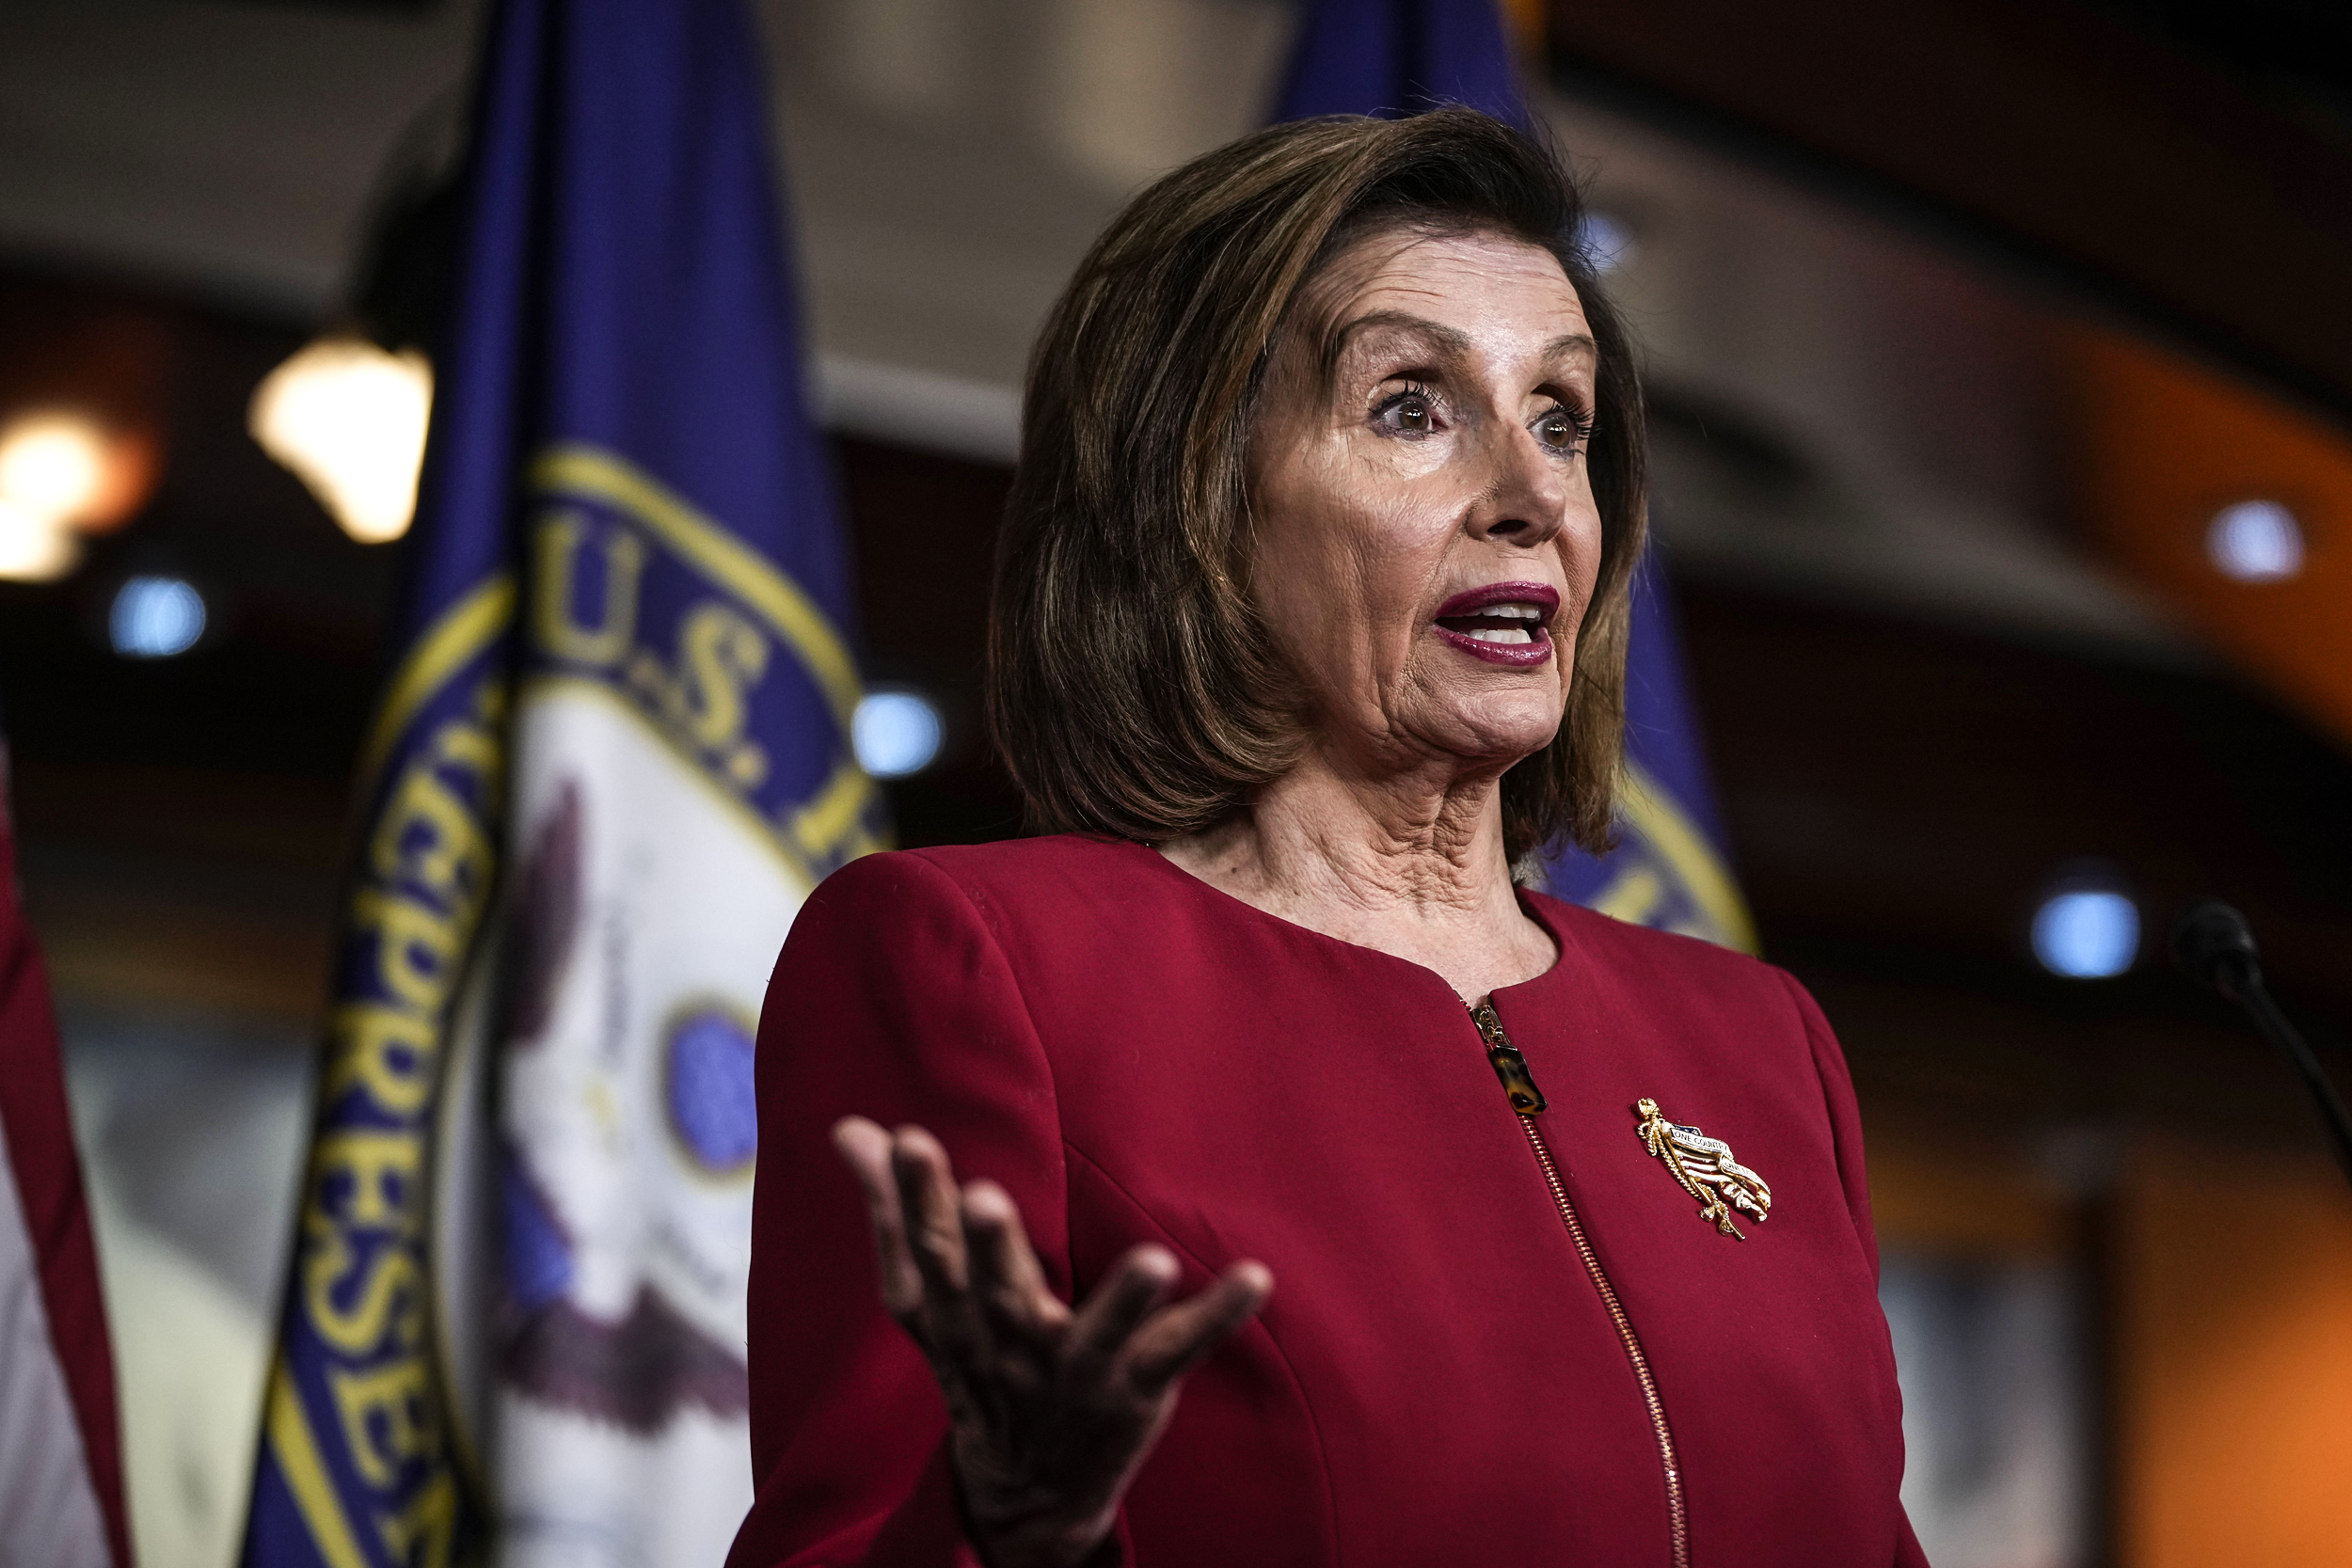 As the House returns, Democrats face hard choices